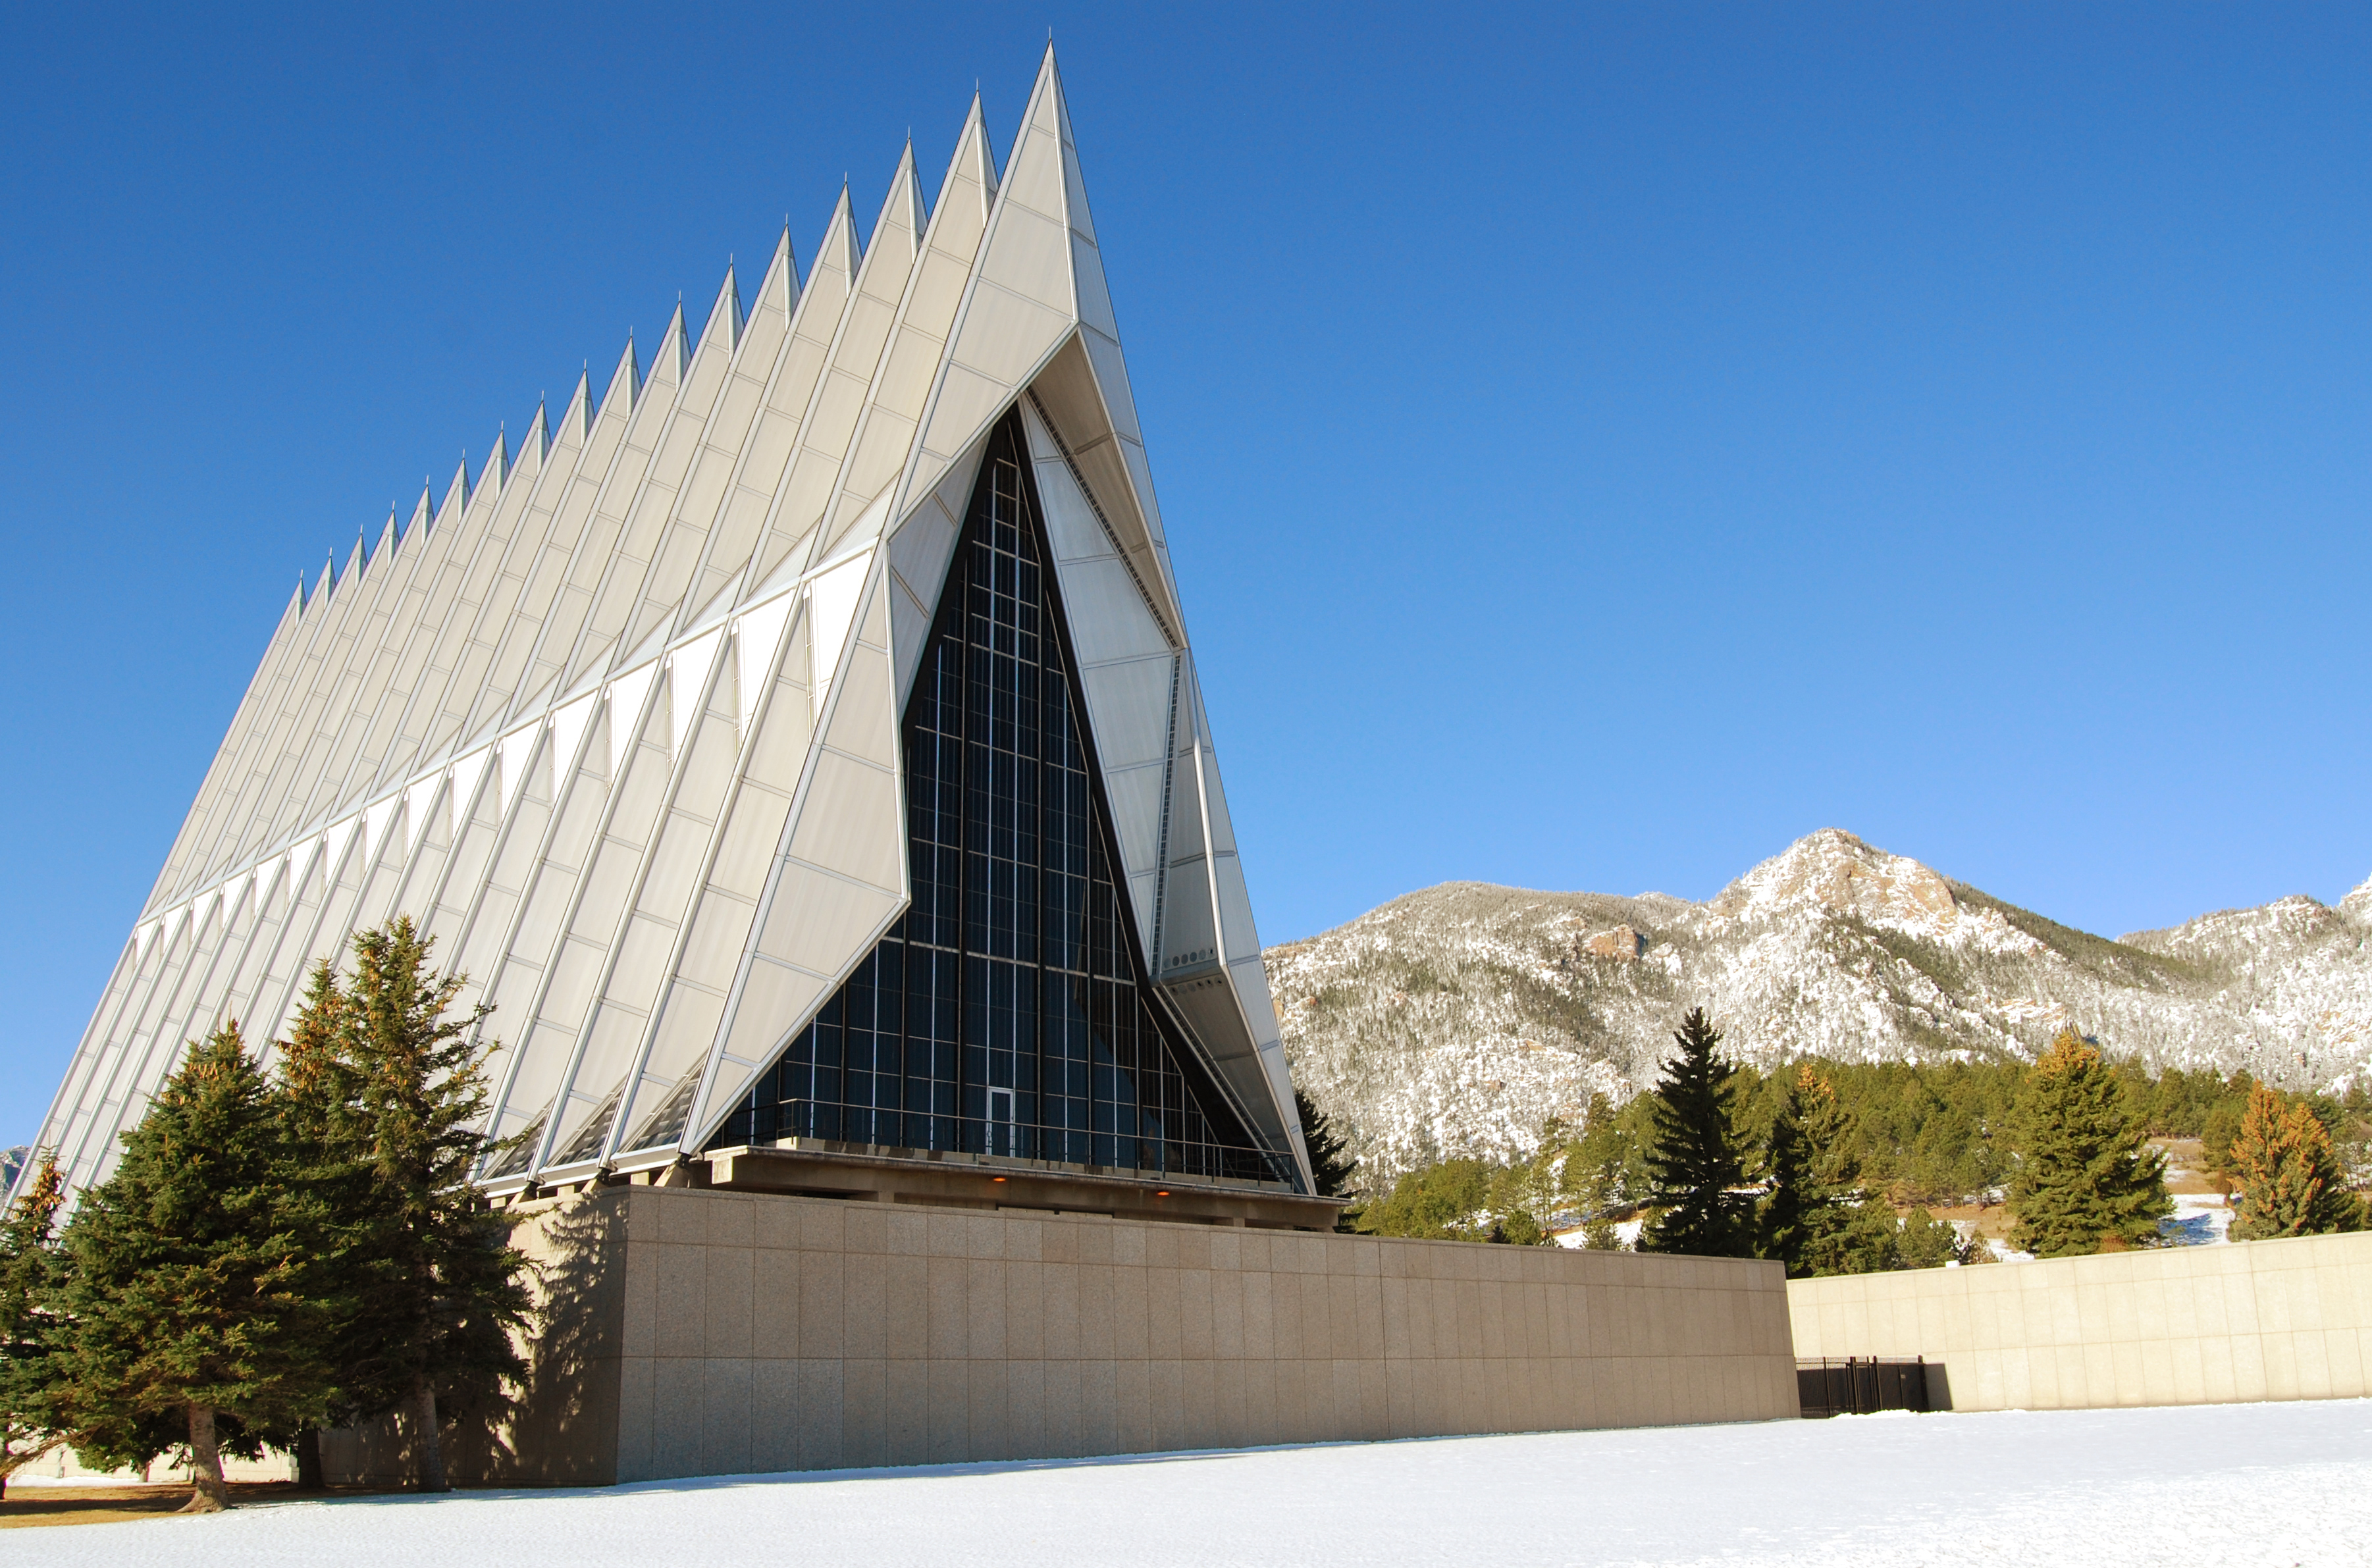 The Cadet Chapel at the U.S. Air Force Academy in Colorado Springs, Colo.